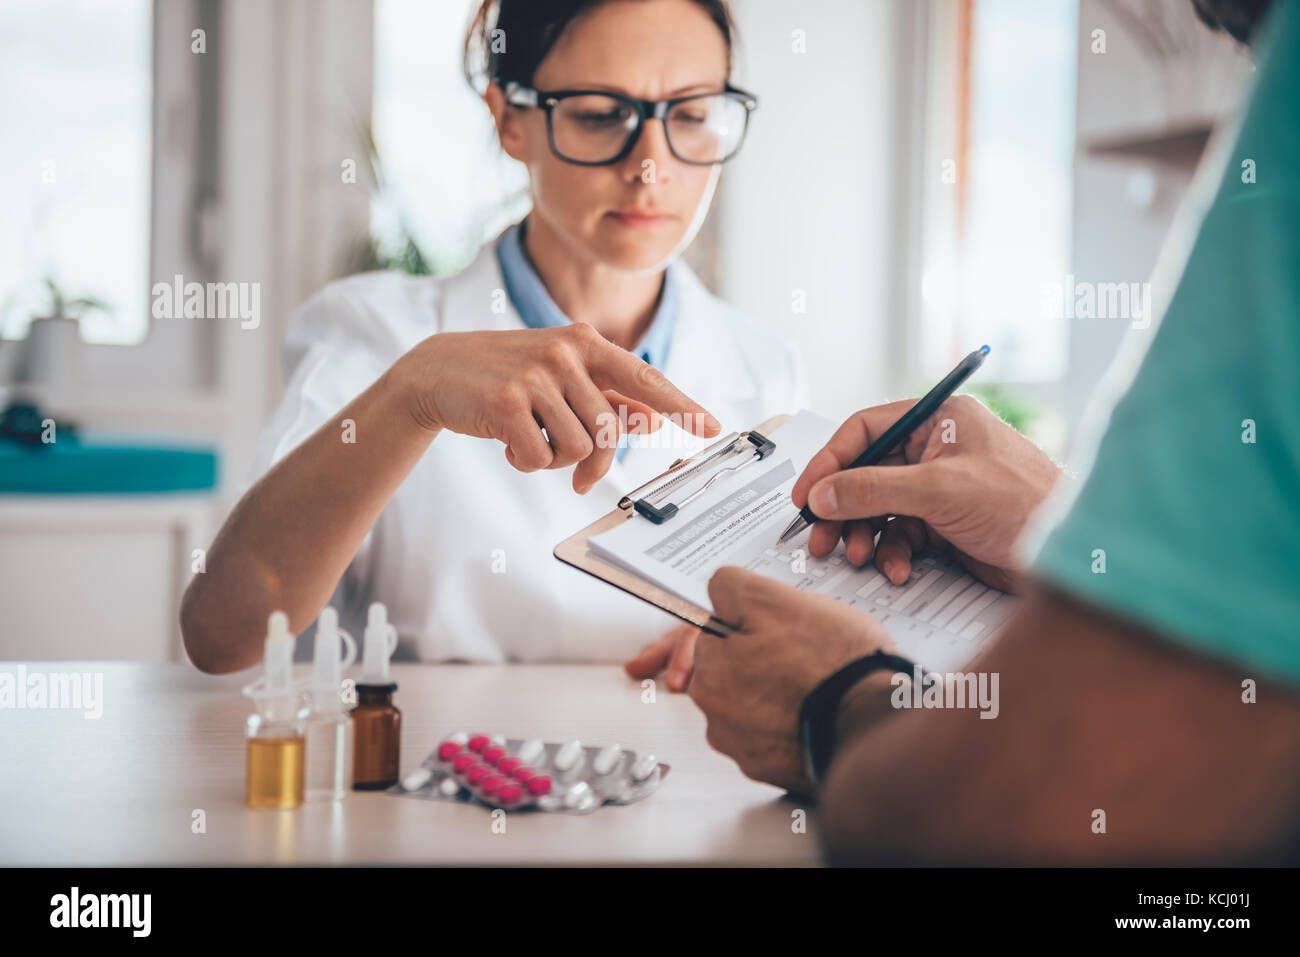 Patient filing health insurance claim form in the doctors office - Stock Image